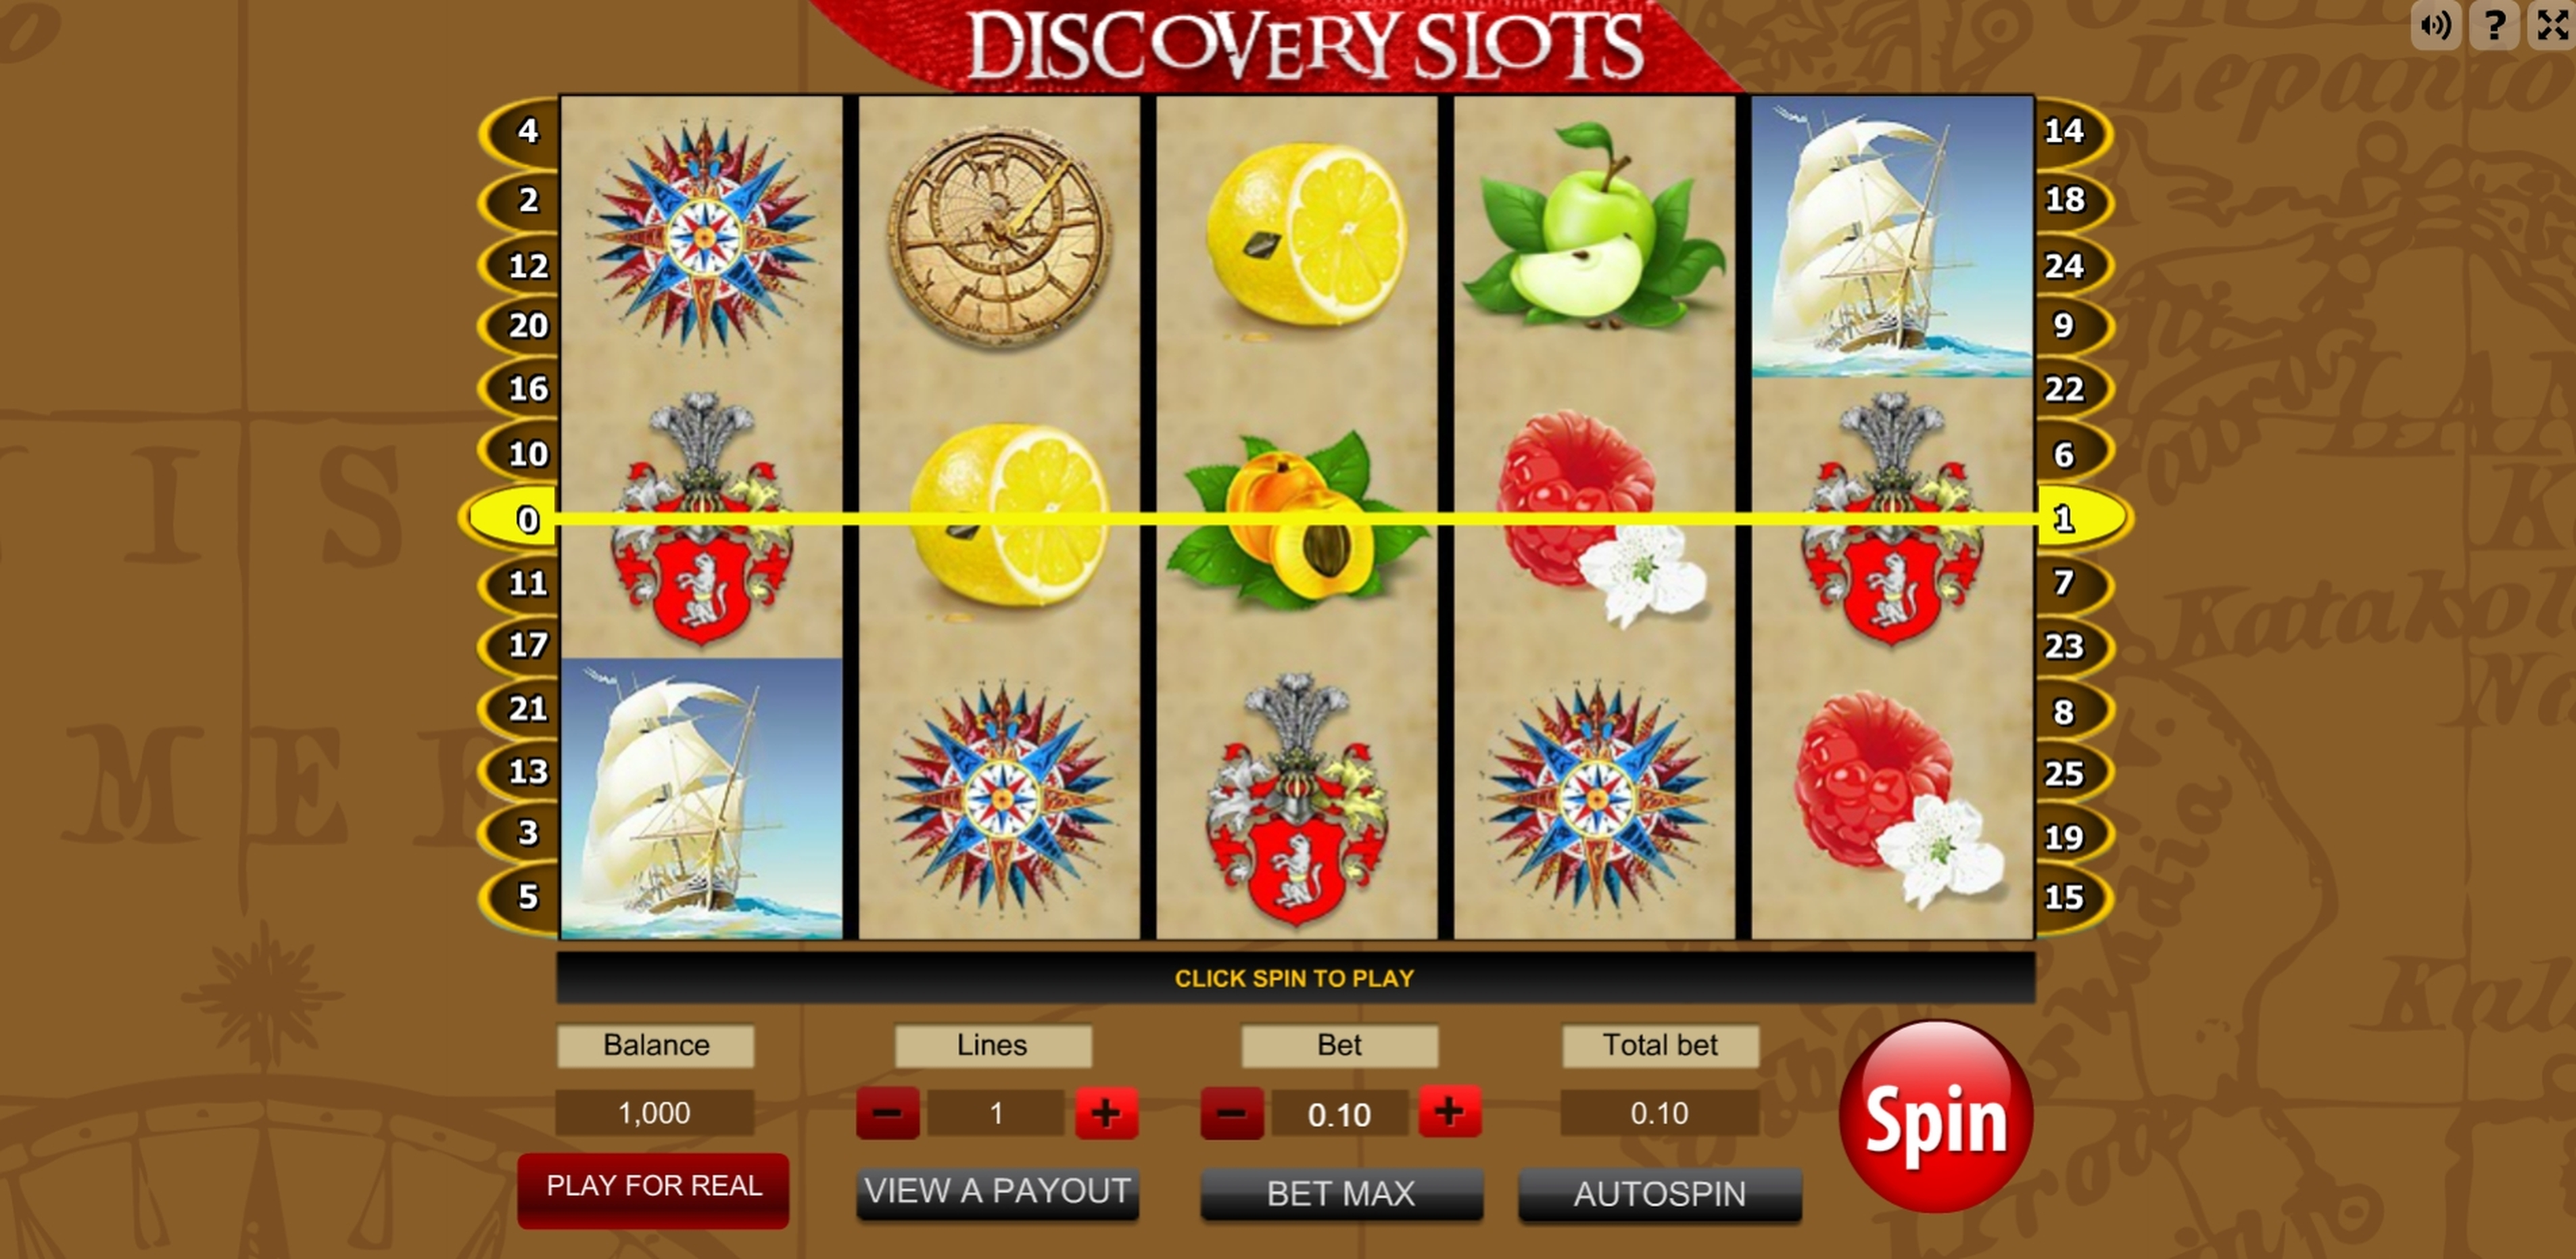 Reels in Discovery Slots Slot Game by Gamescale Software